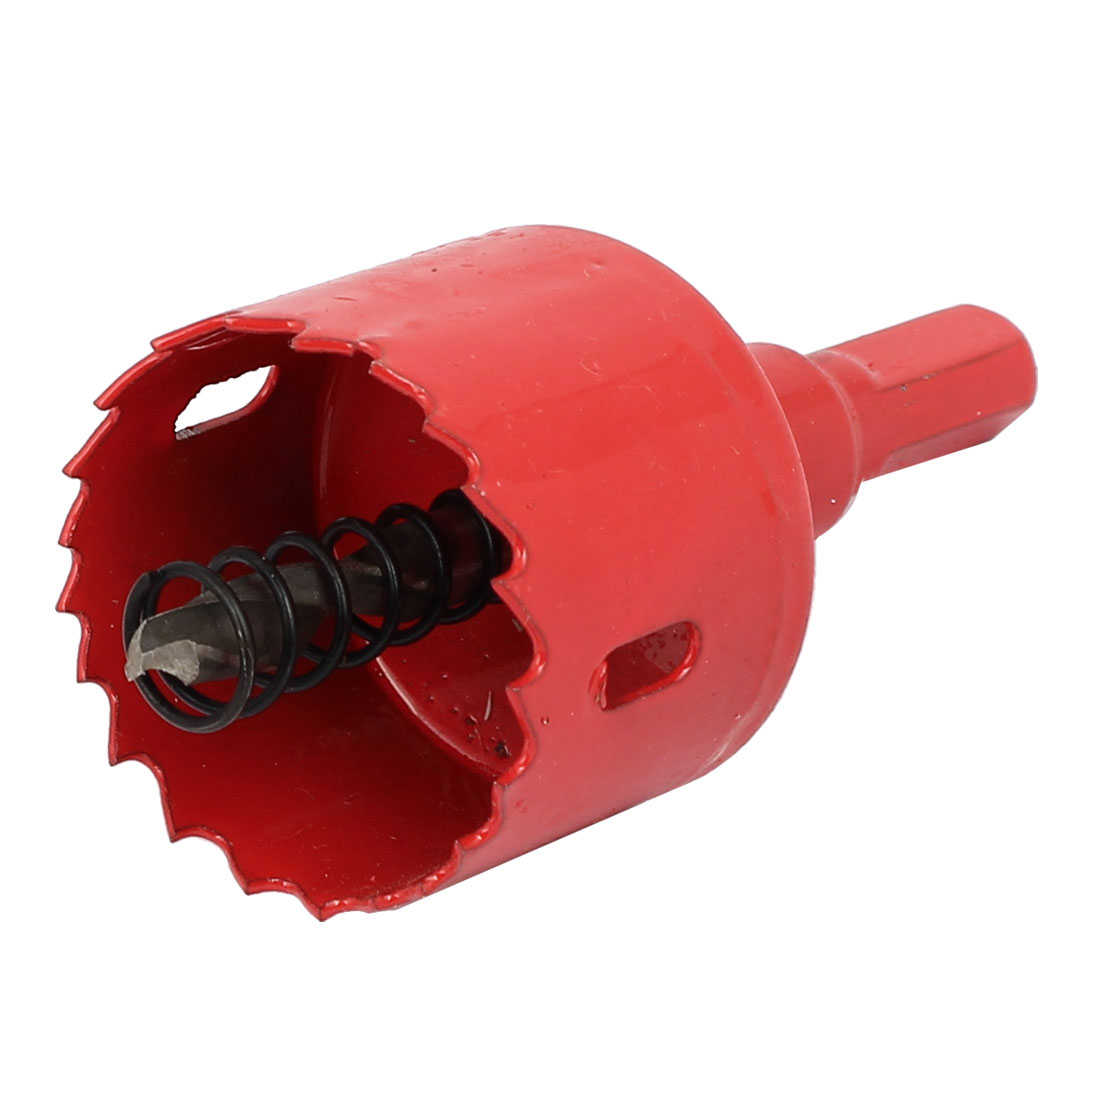 38mm Cutting Dia M42 HSS Spring Loaded Bi-Metal Hole Saw Drilling Tool Red